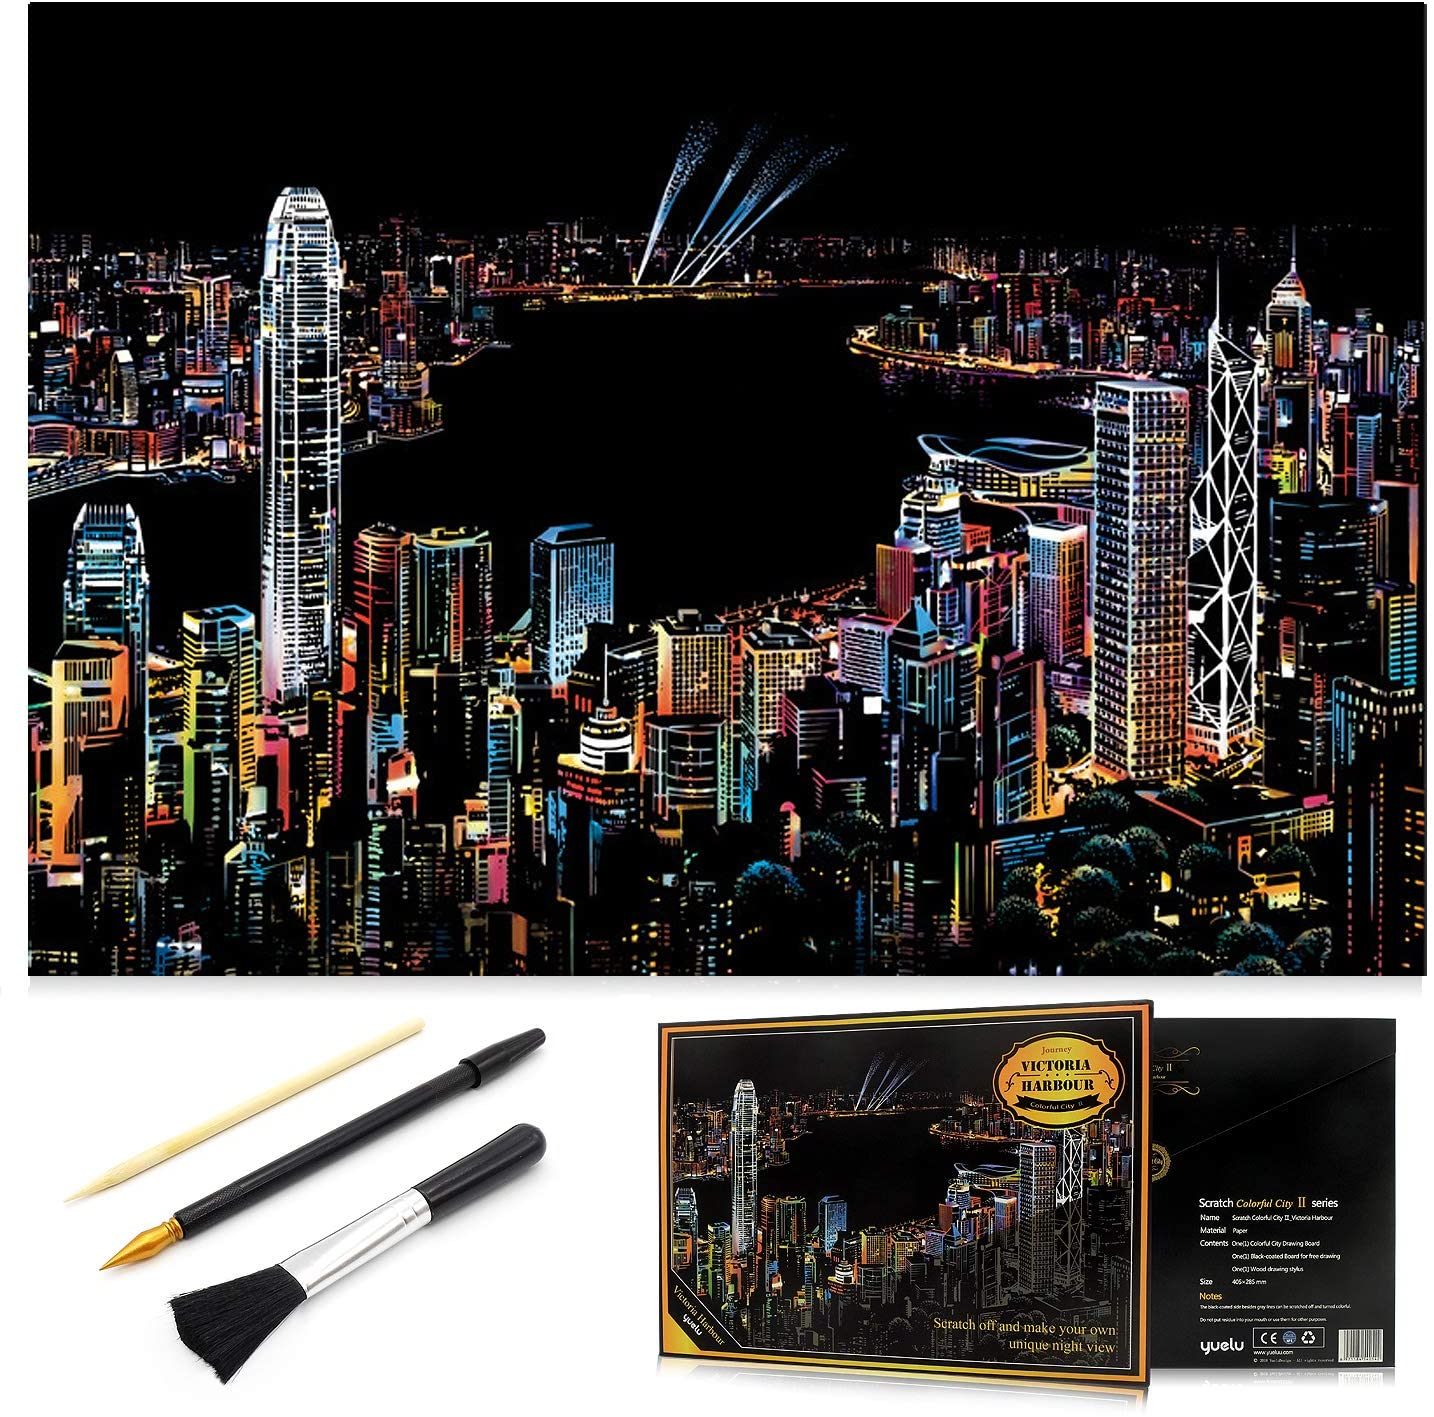 Scratch Painting Kits for Adults & Kids, Craft Art Set, Rainbow Scratch Art Painting Paper, Sketch Pad DIY Night View Scratchboard, 16 x 11.2 Creative Gift - with 3 Tools ( Victoria harbour )